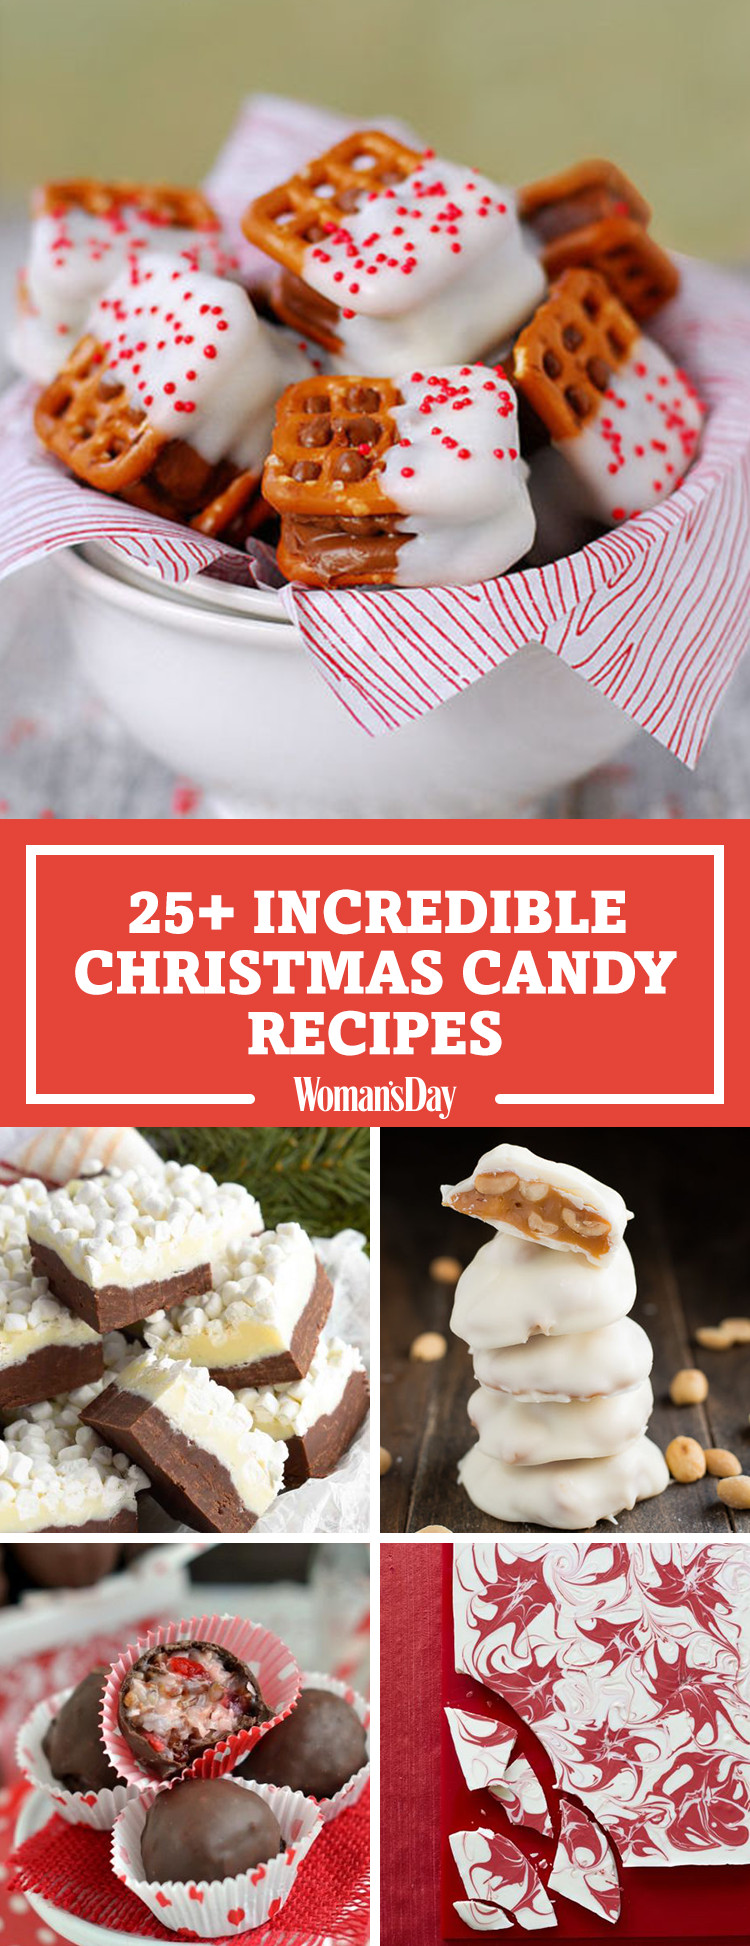 Recipe For Christmas Candy  28 Homemade Christmas Candy Recipes How To Make Your Own